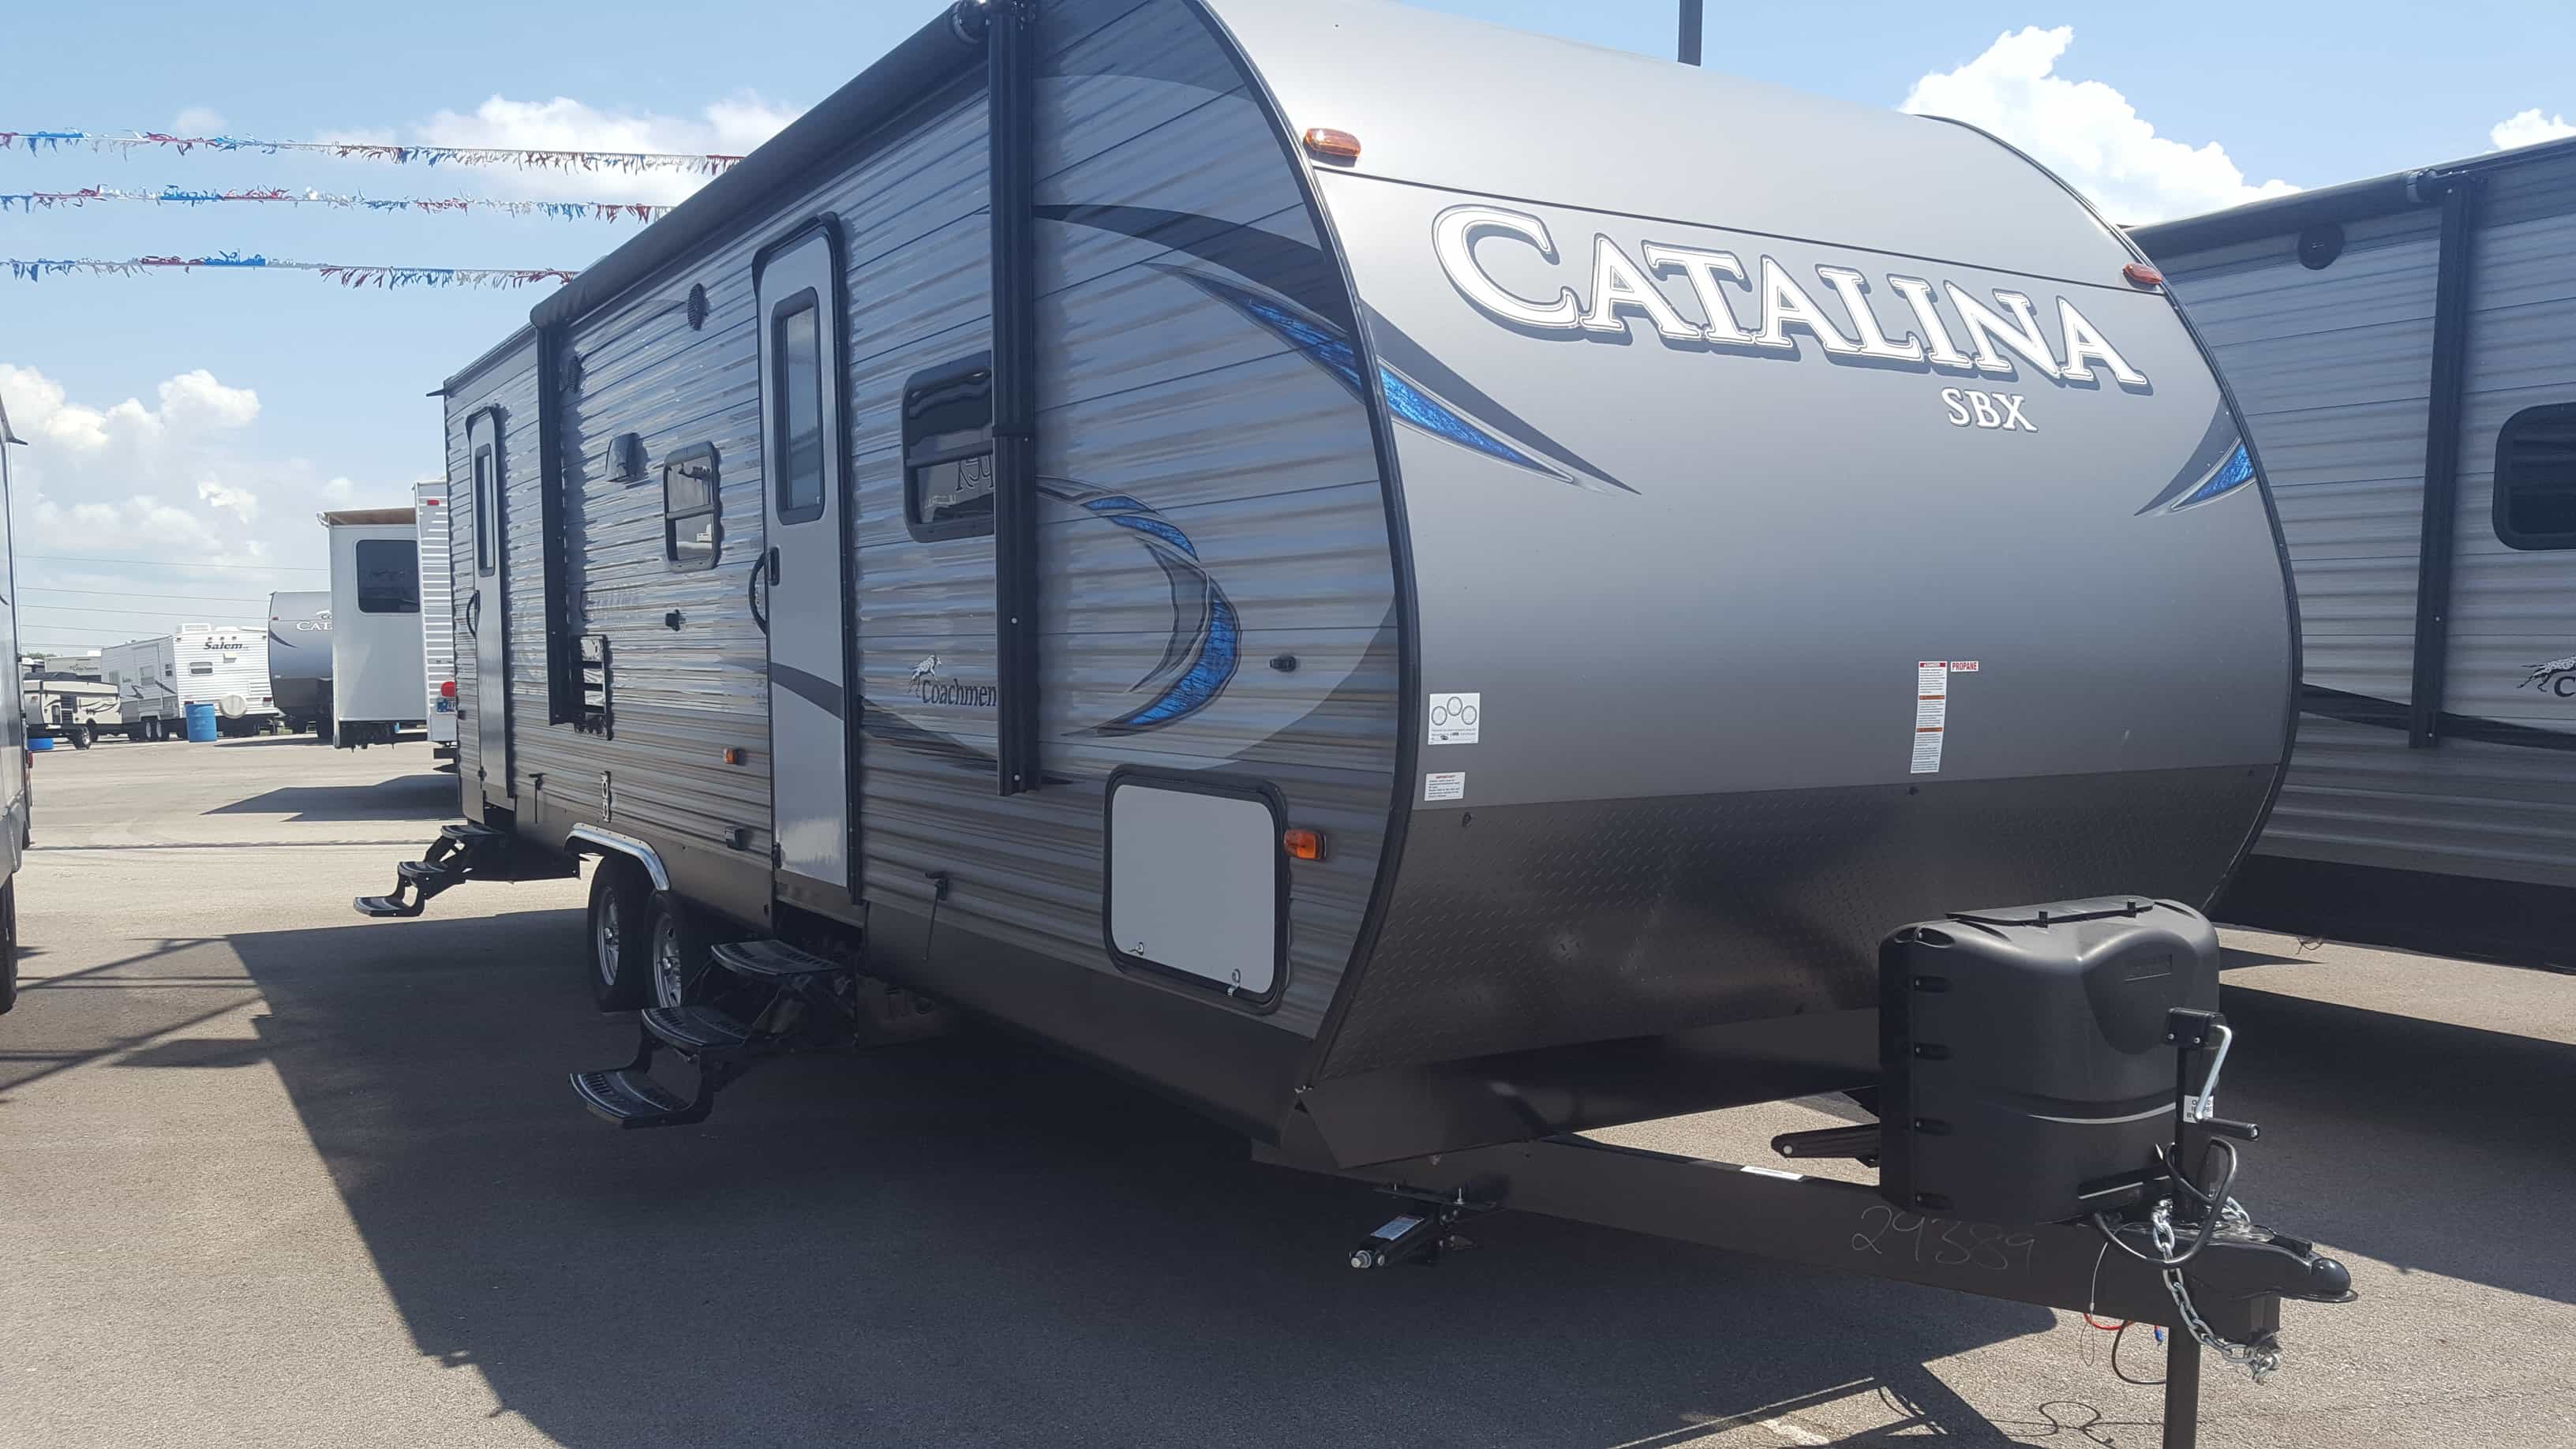 NEW 2018 Coachmen CATALINA SBX 281DDS - American RV